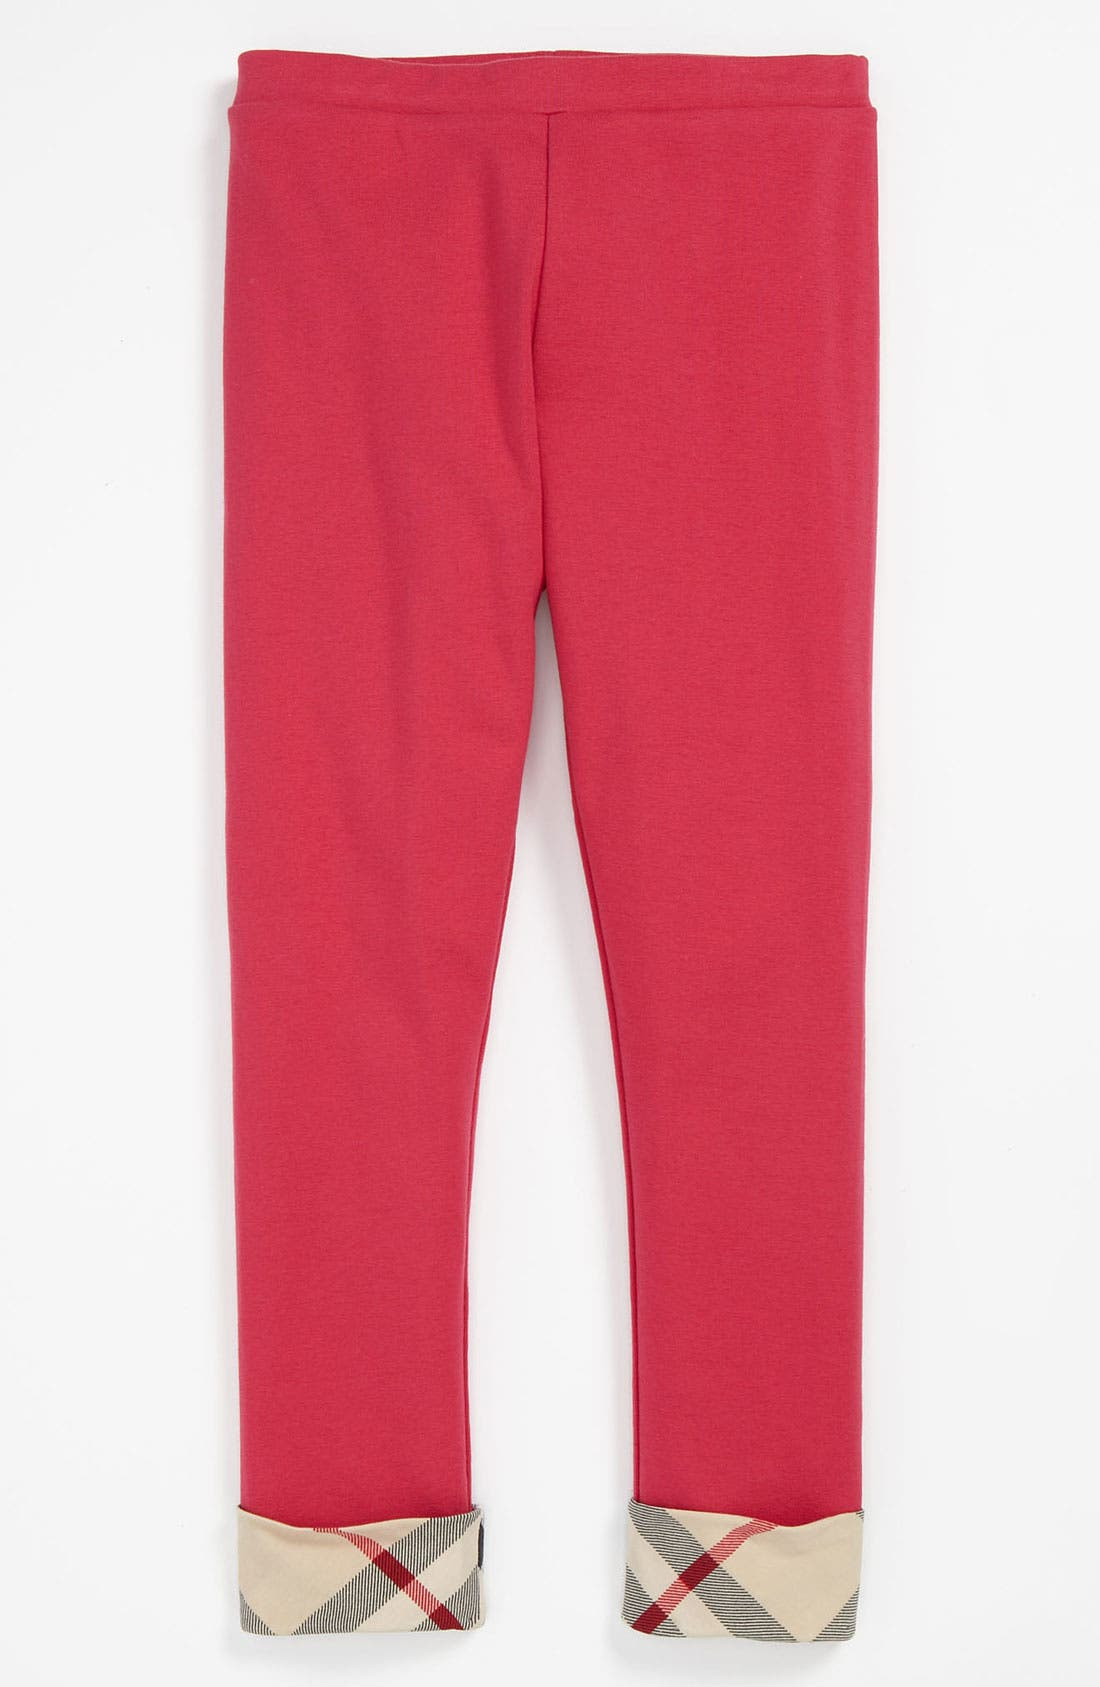 Main Image - Burberry 'Laura' Knit Leggings (Little Girls & Big Girls)